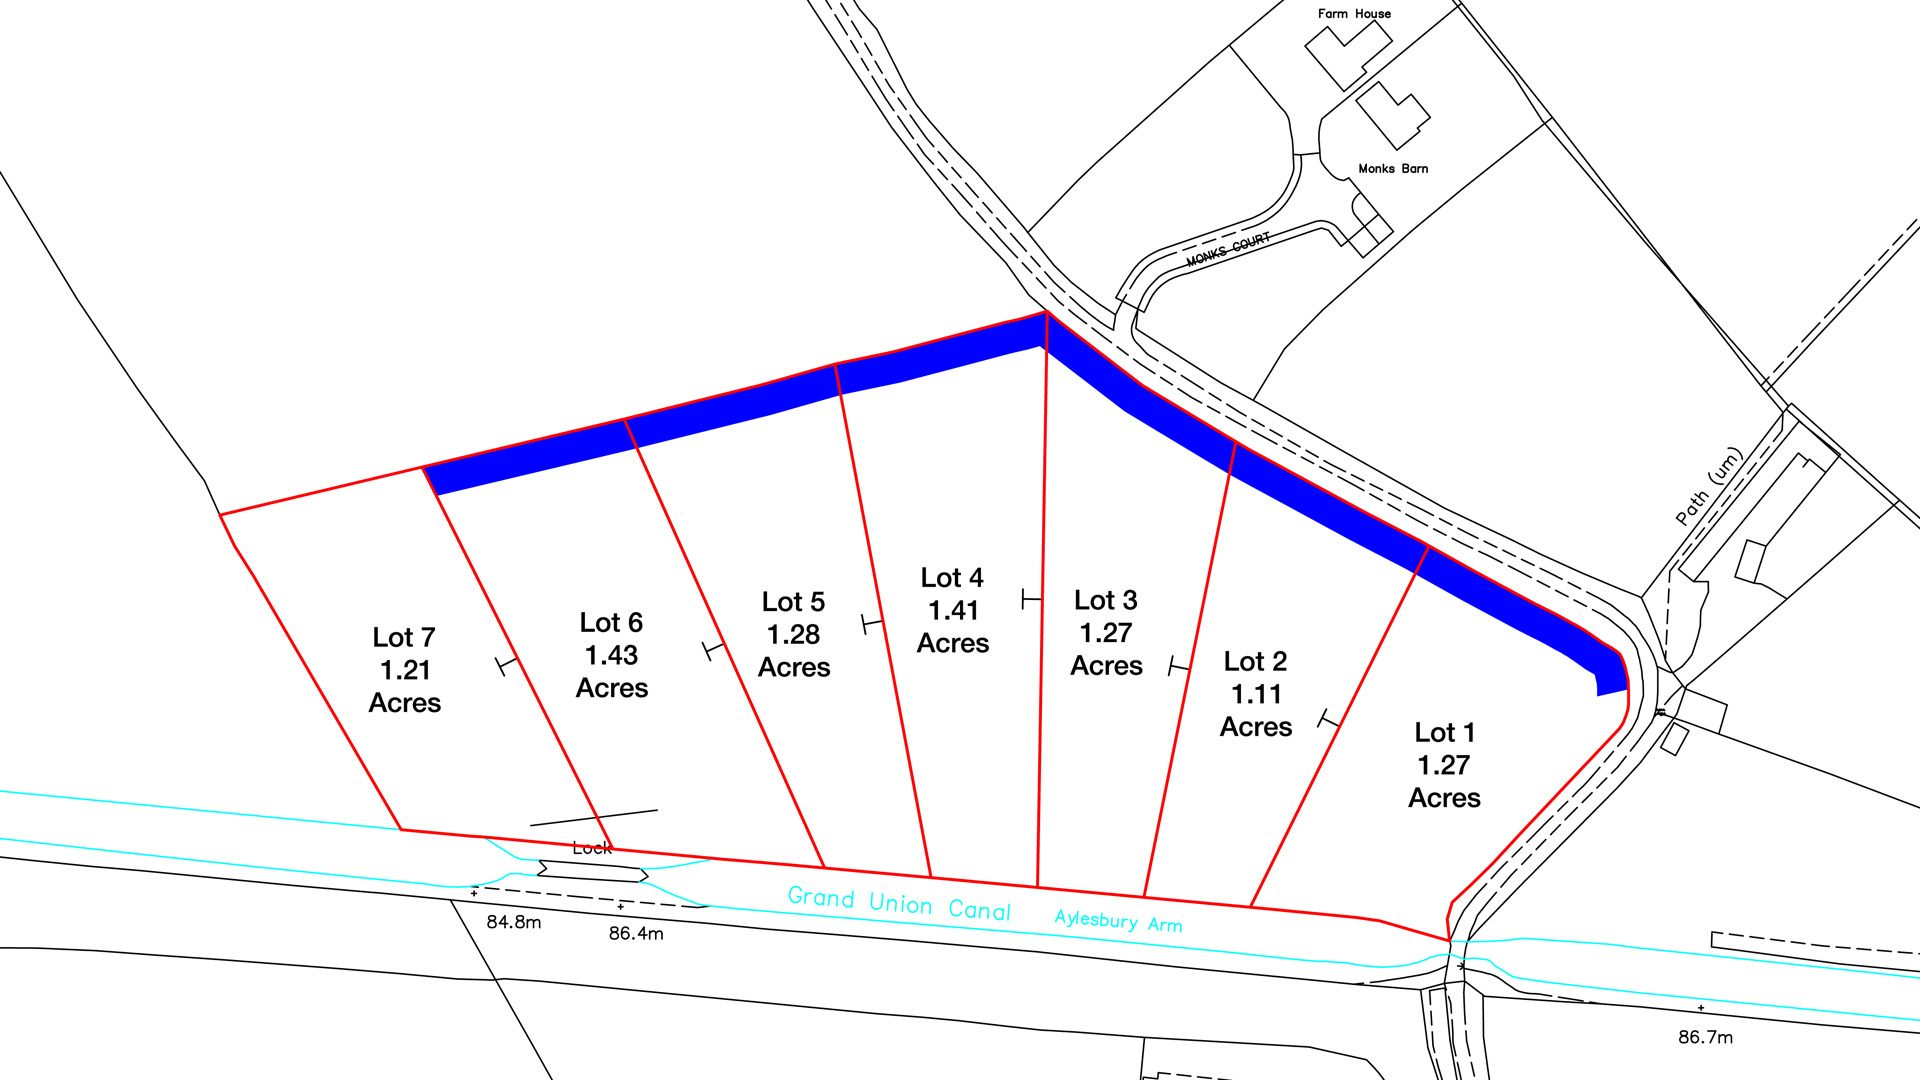 Land for sale on the Grand Union Canal site plan